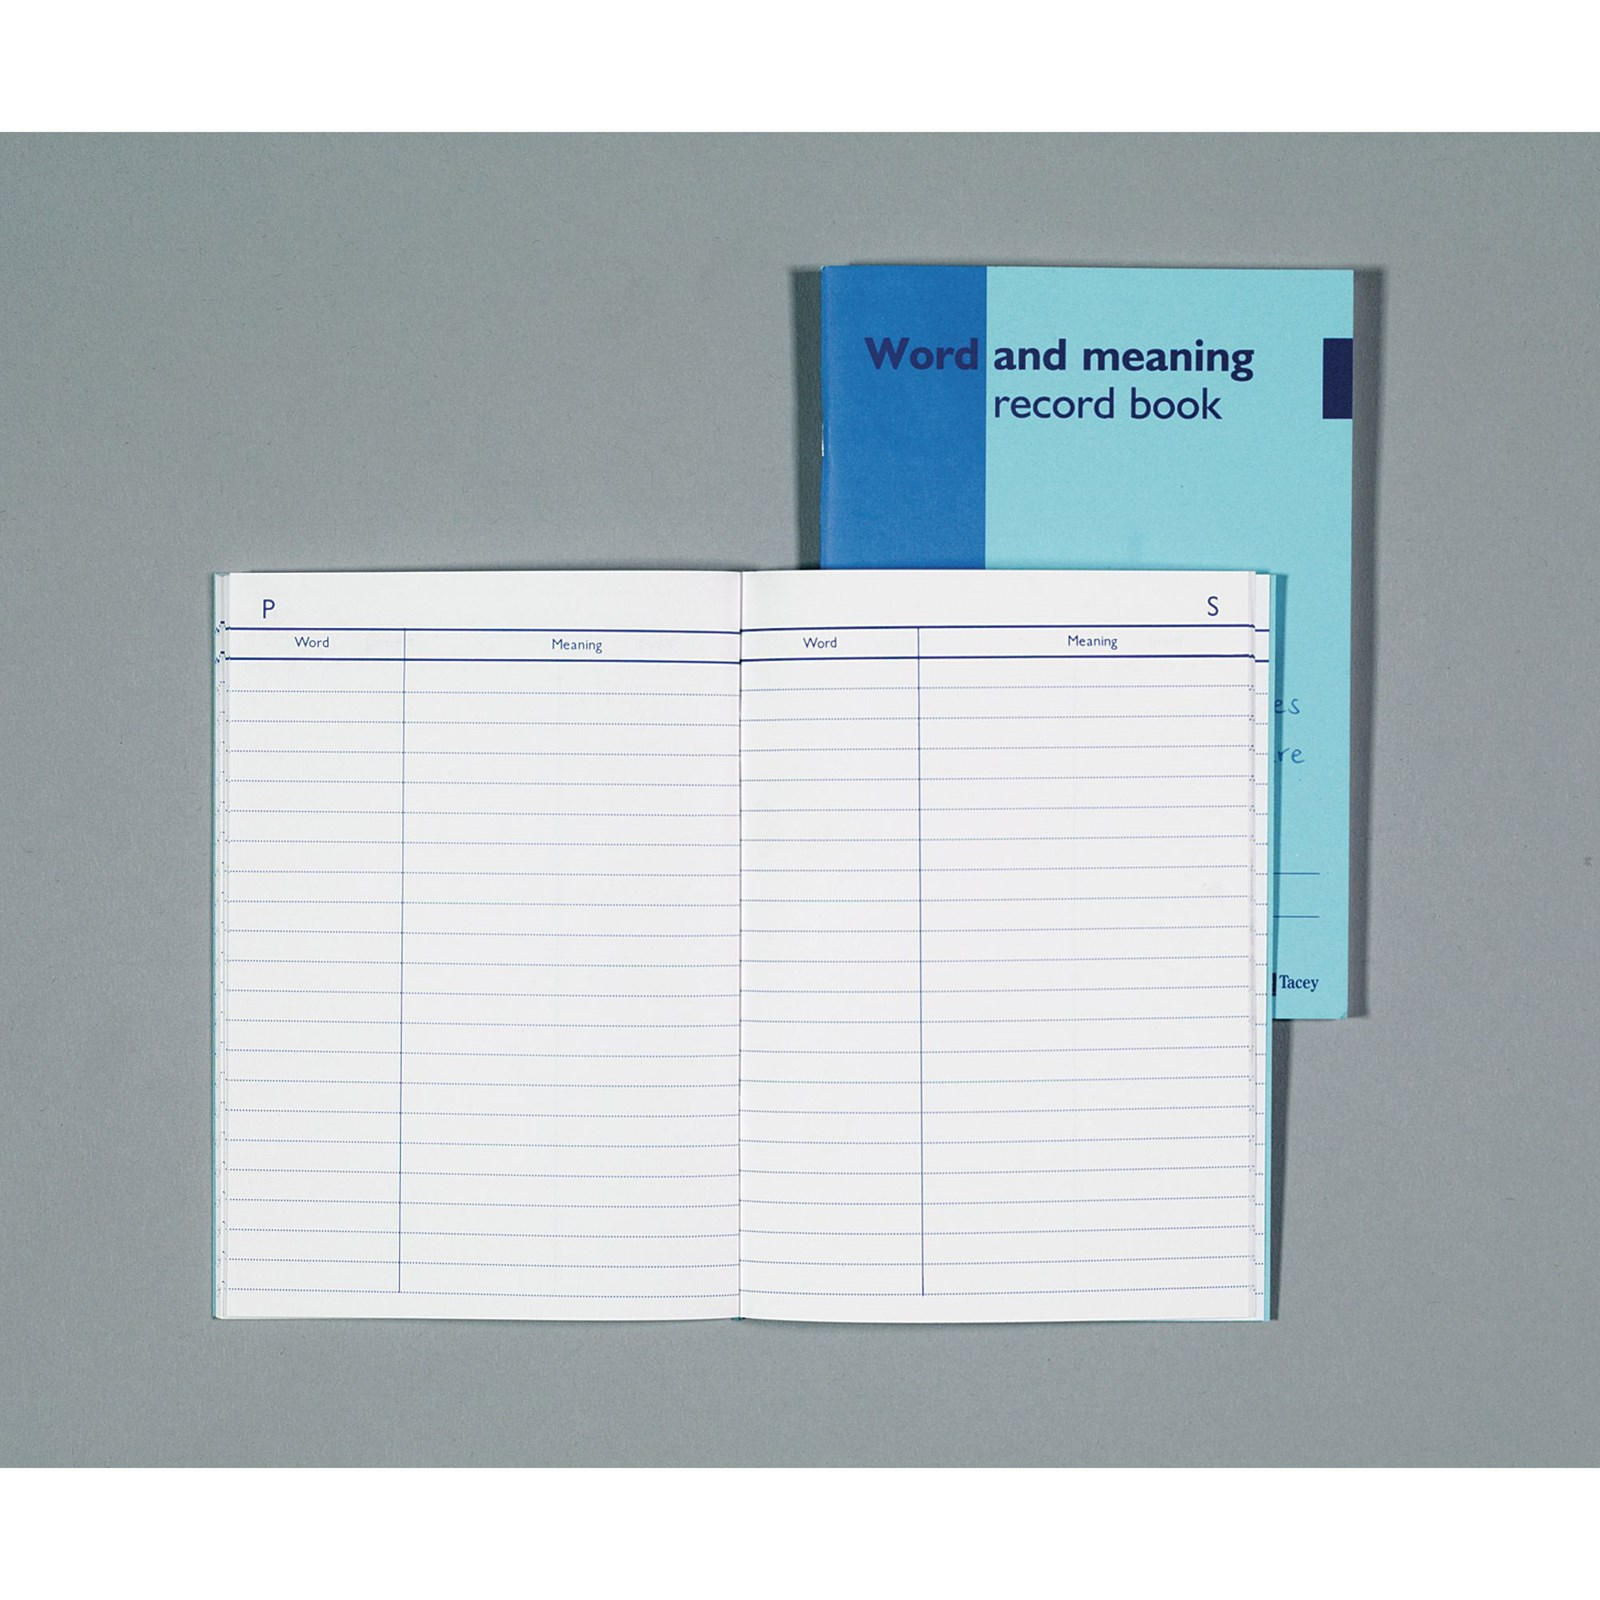 Word and Meaning Record Book